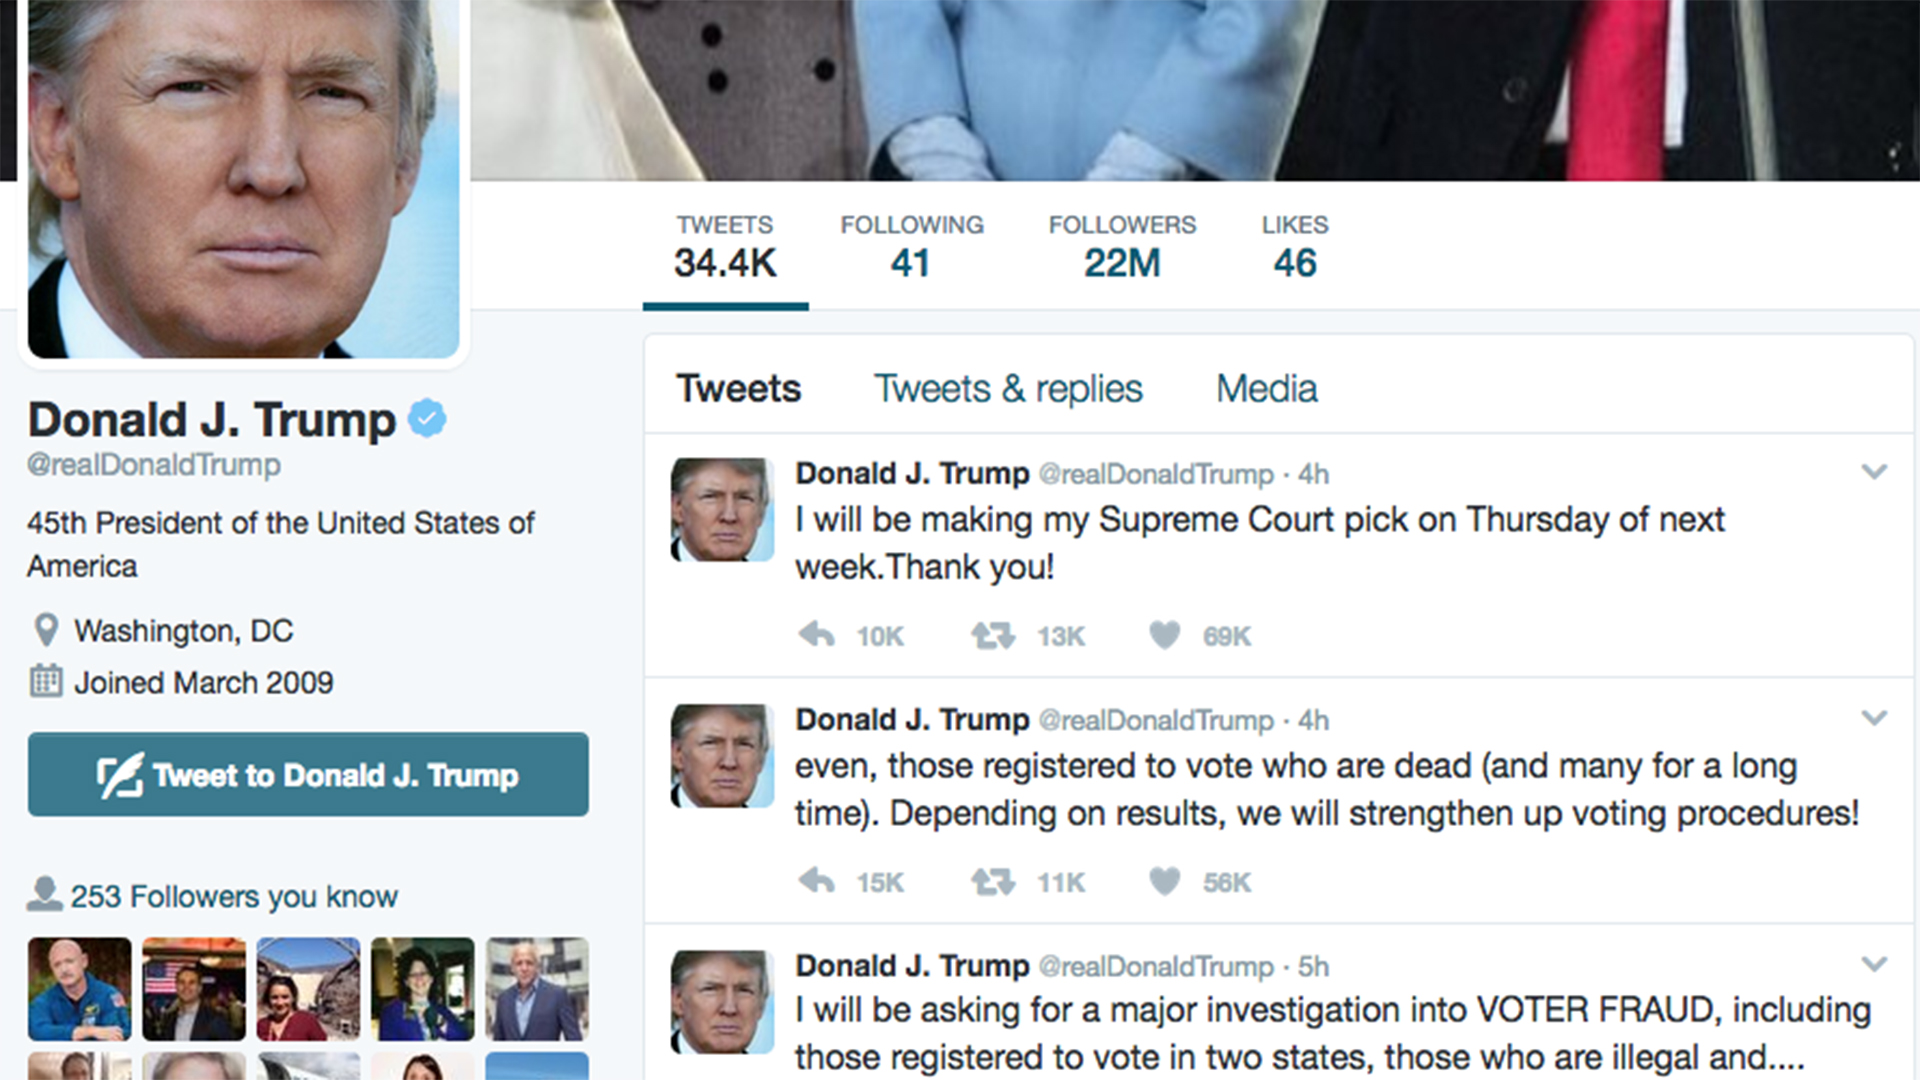 President Donald Trump sent out tweets about investigating voter fraud during the November 2016 election..